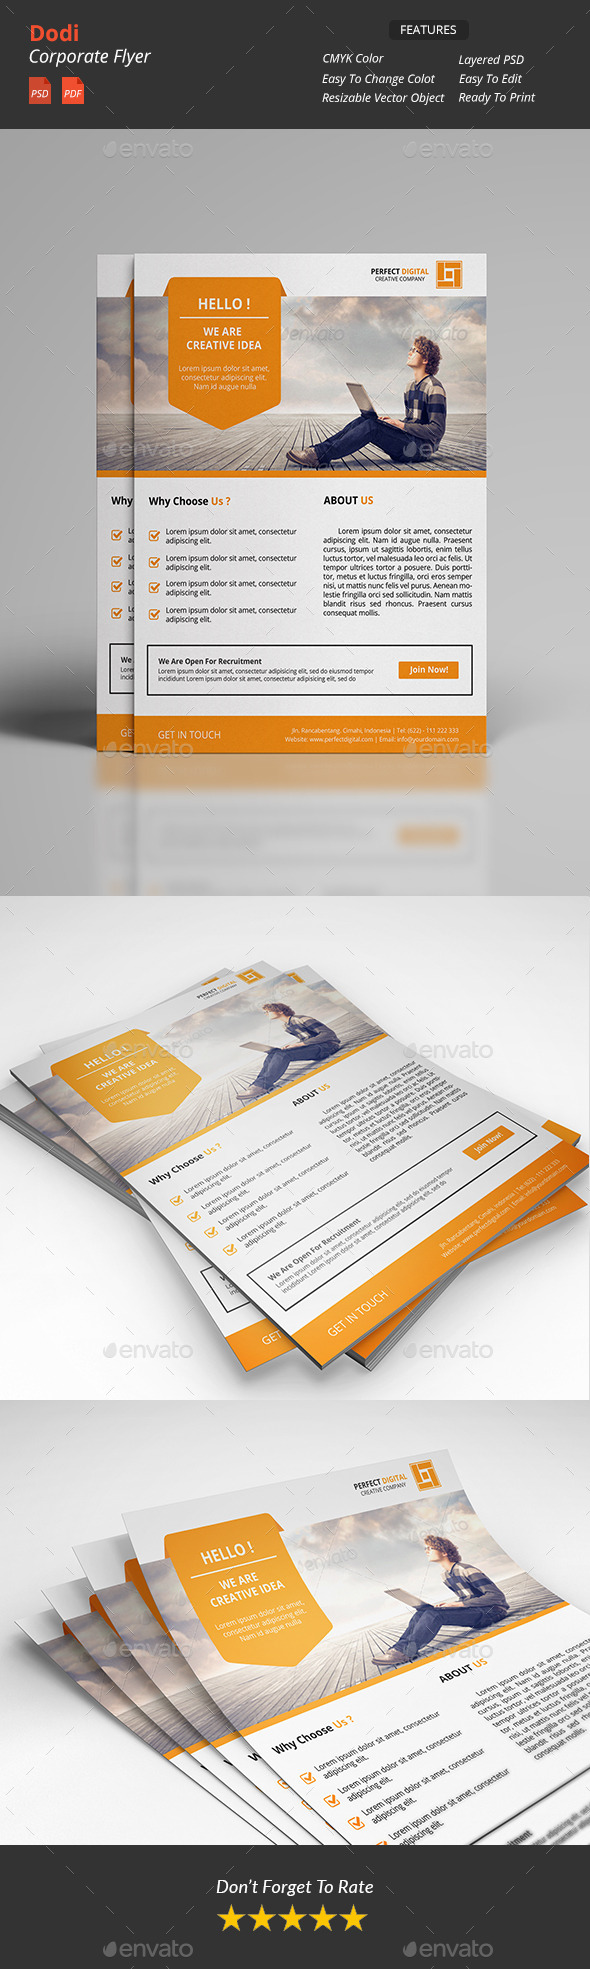 GraphicRiver Dodi Clean Corporate Flyer 11812733